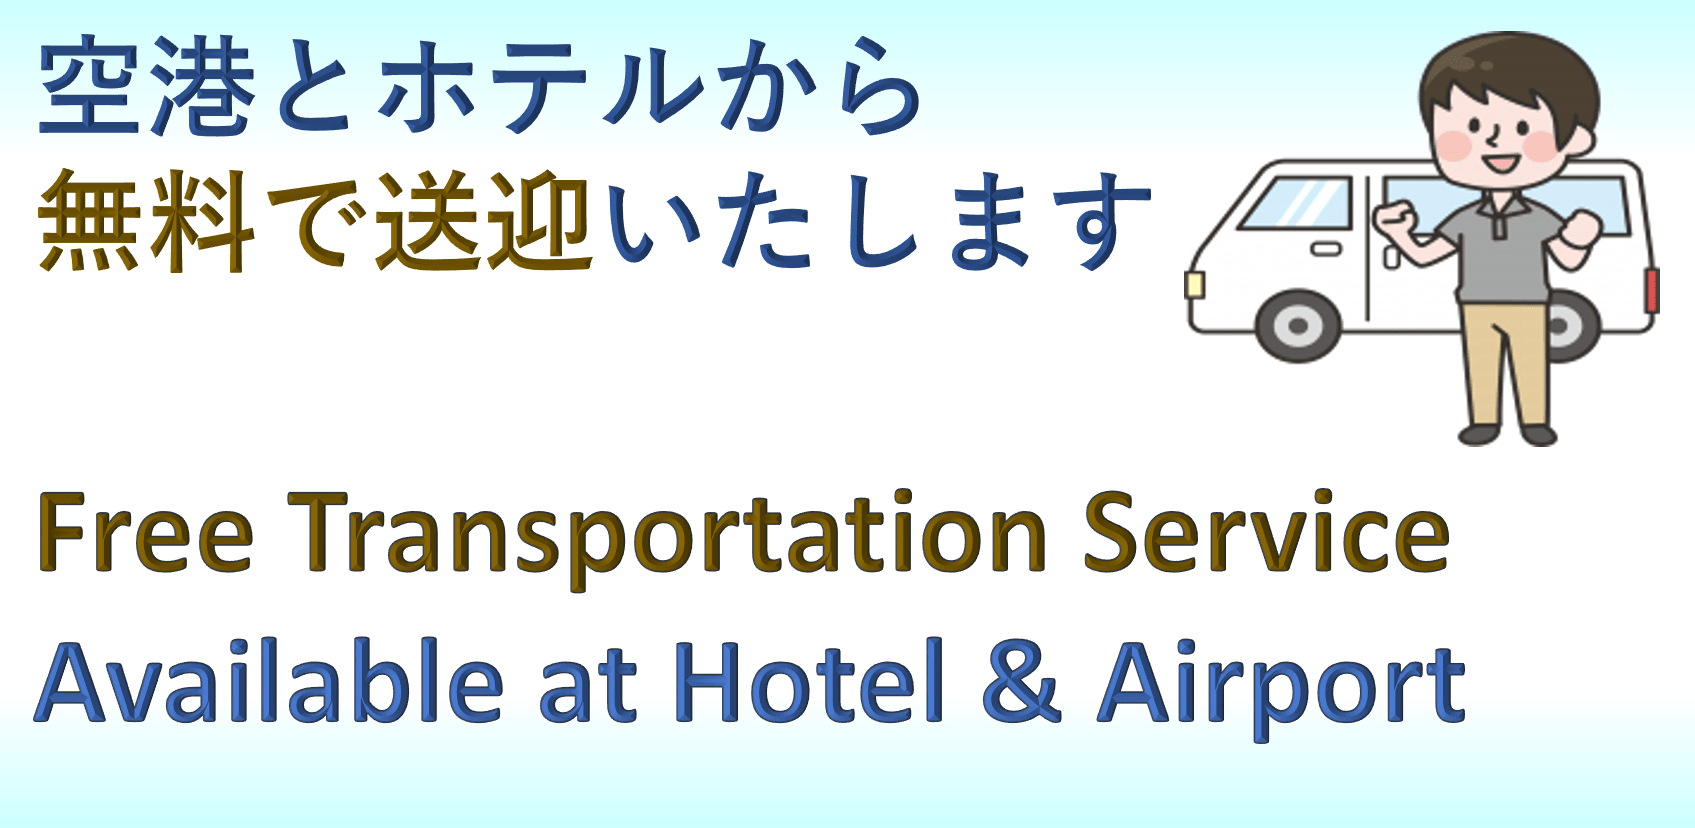 Free Shuttle Bus Service is Available for Guests!